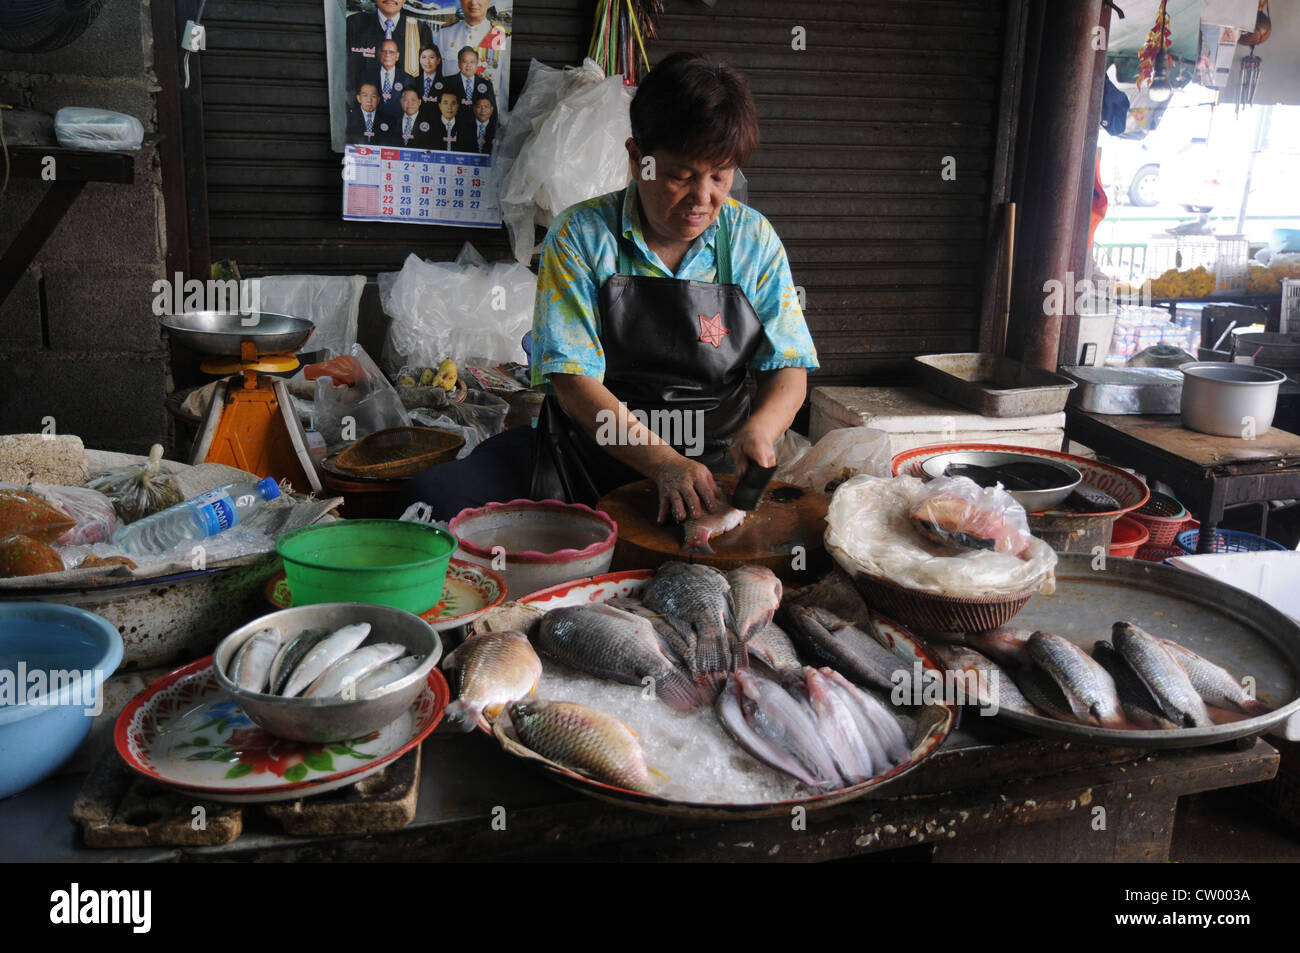 Woman cleaning fish editorial stock photo. Image of birds